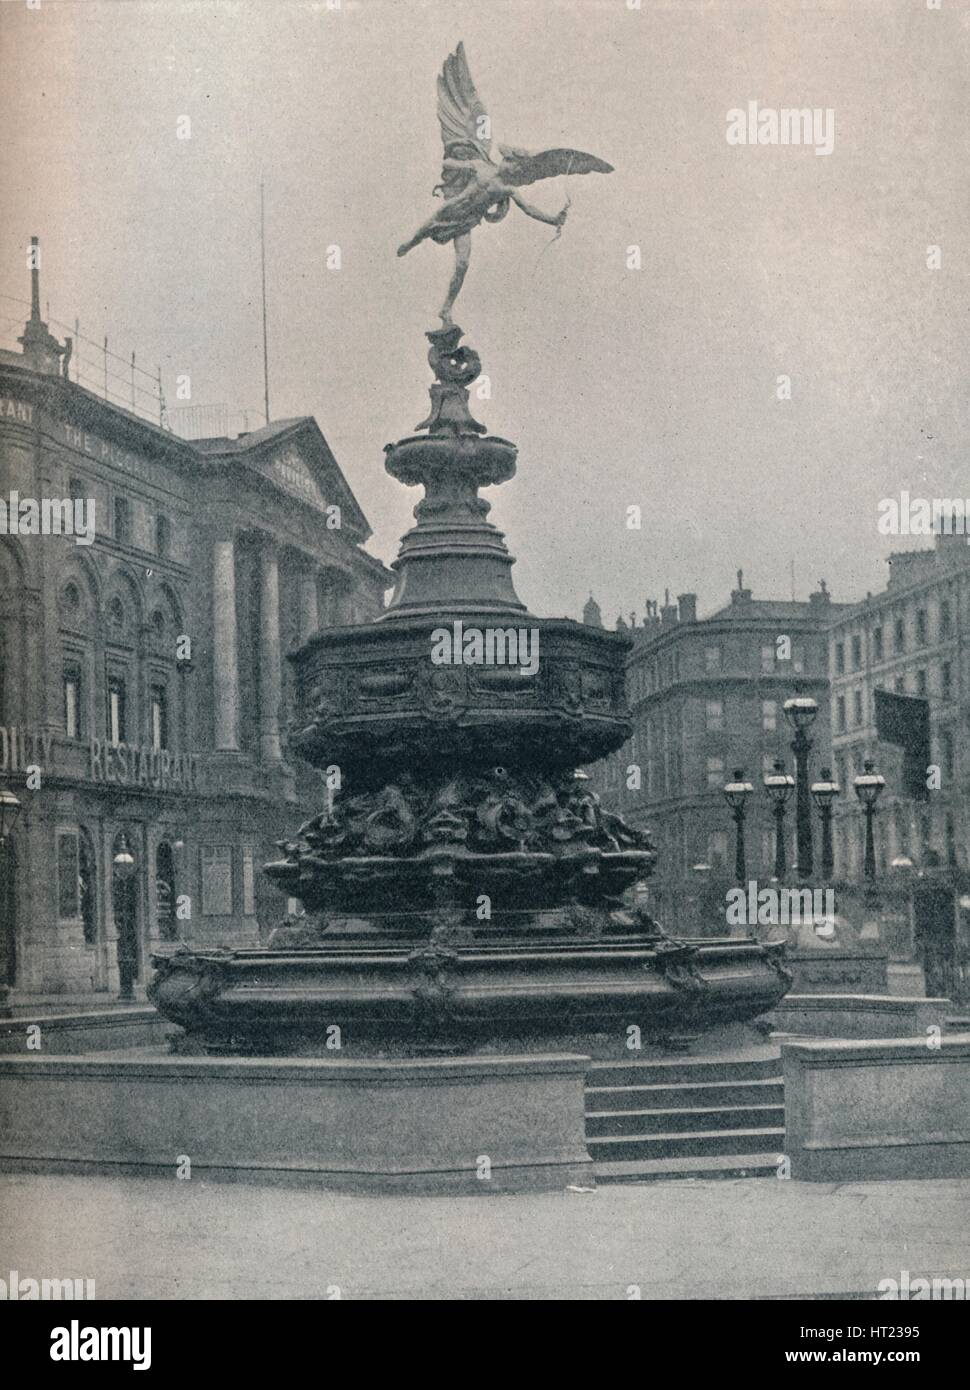 'Shaftesbury Memorial Fountain', c1909. Artist: Frederick Hollyer. - Stock Image